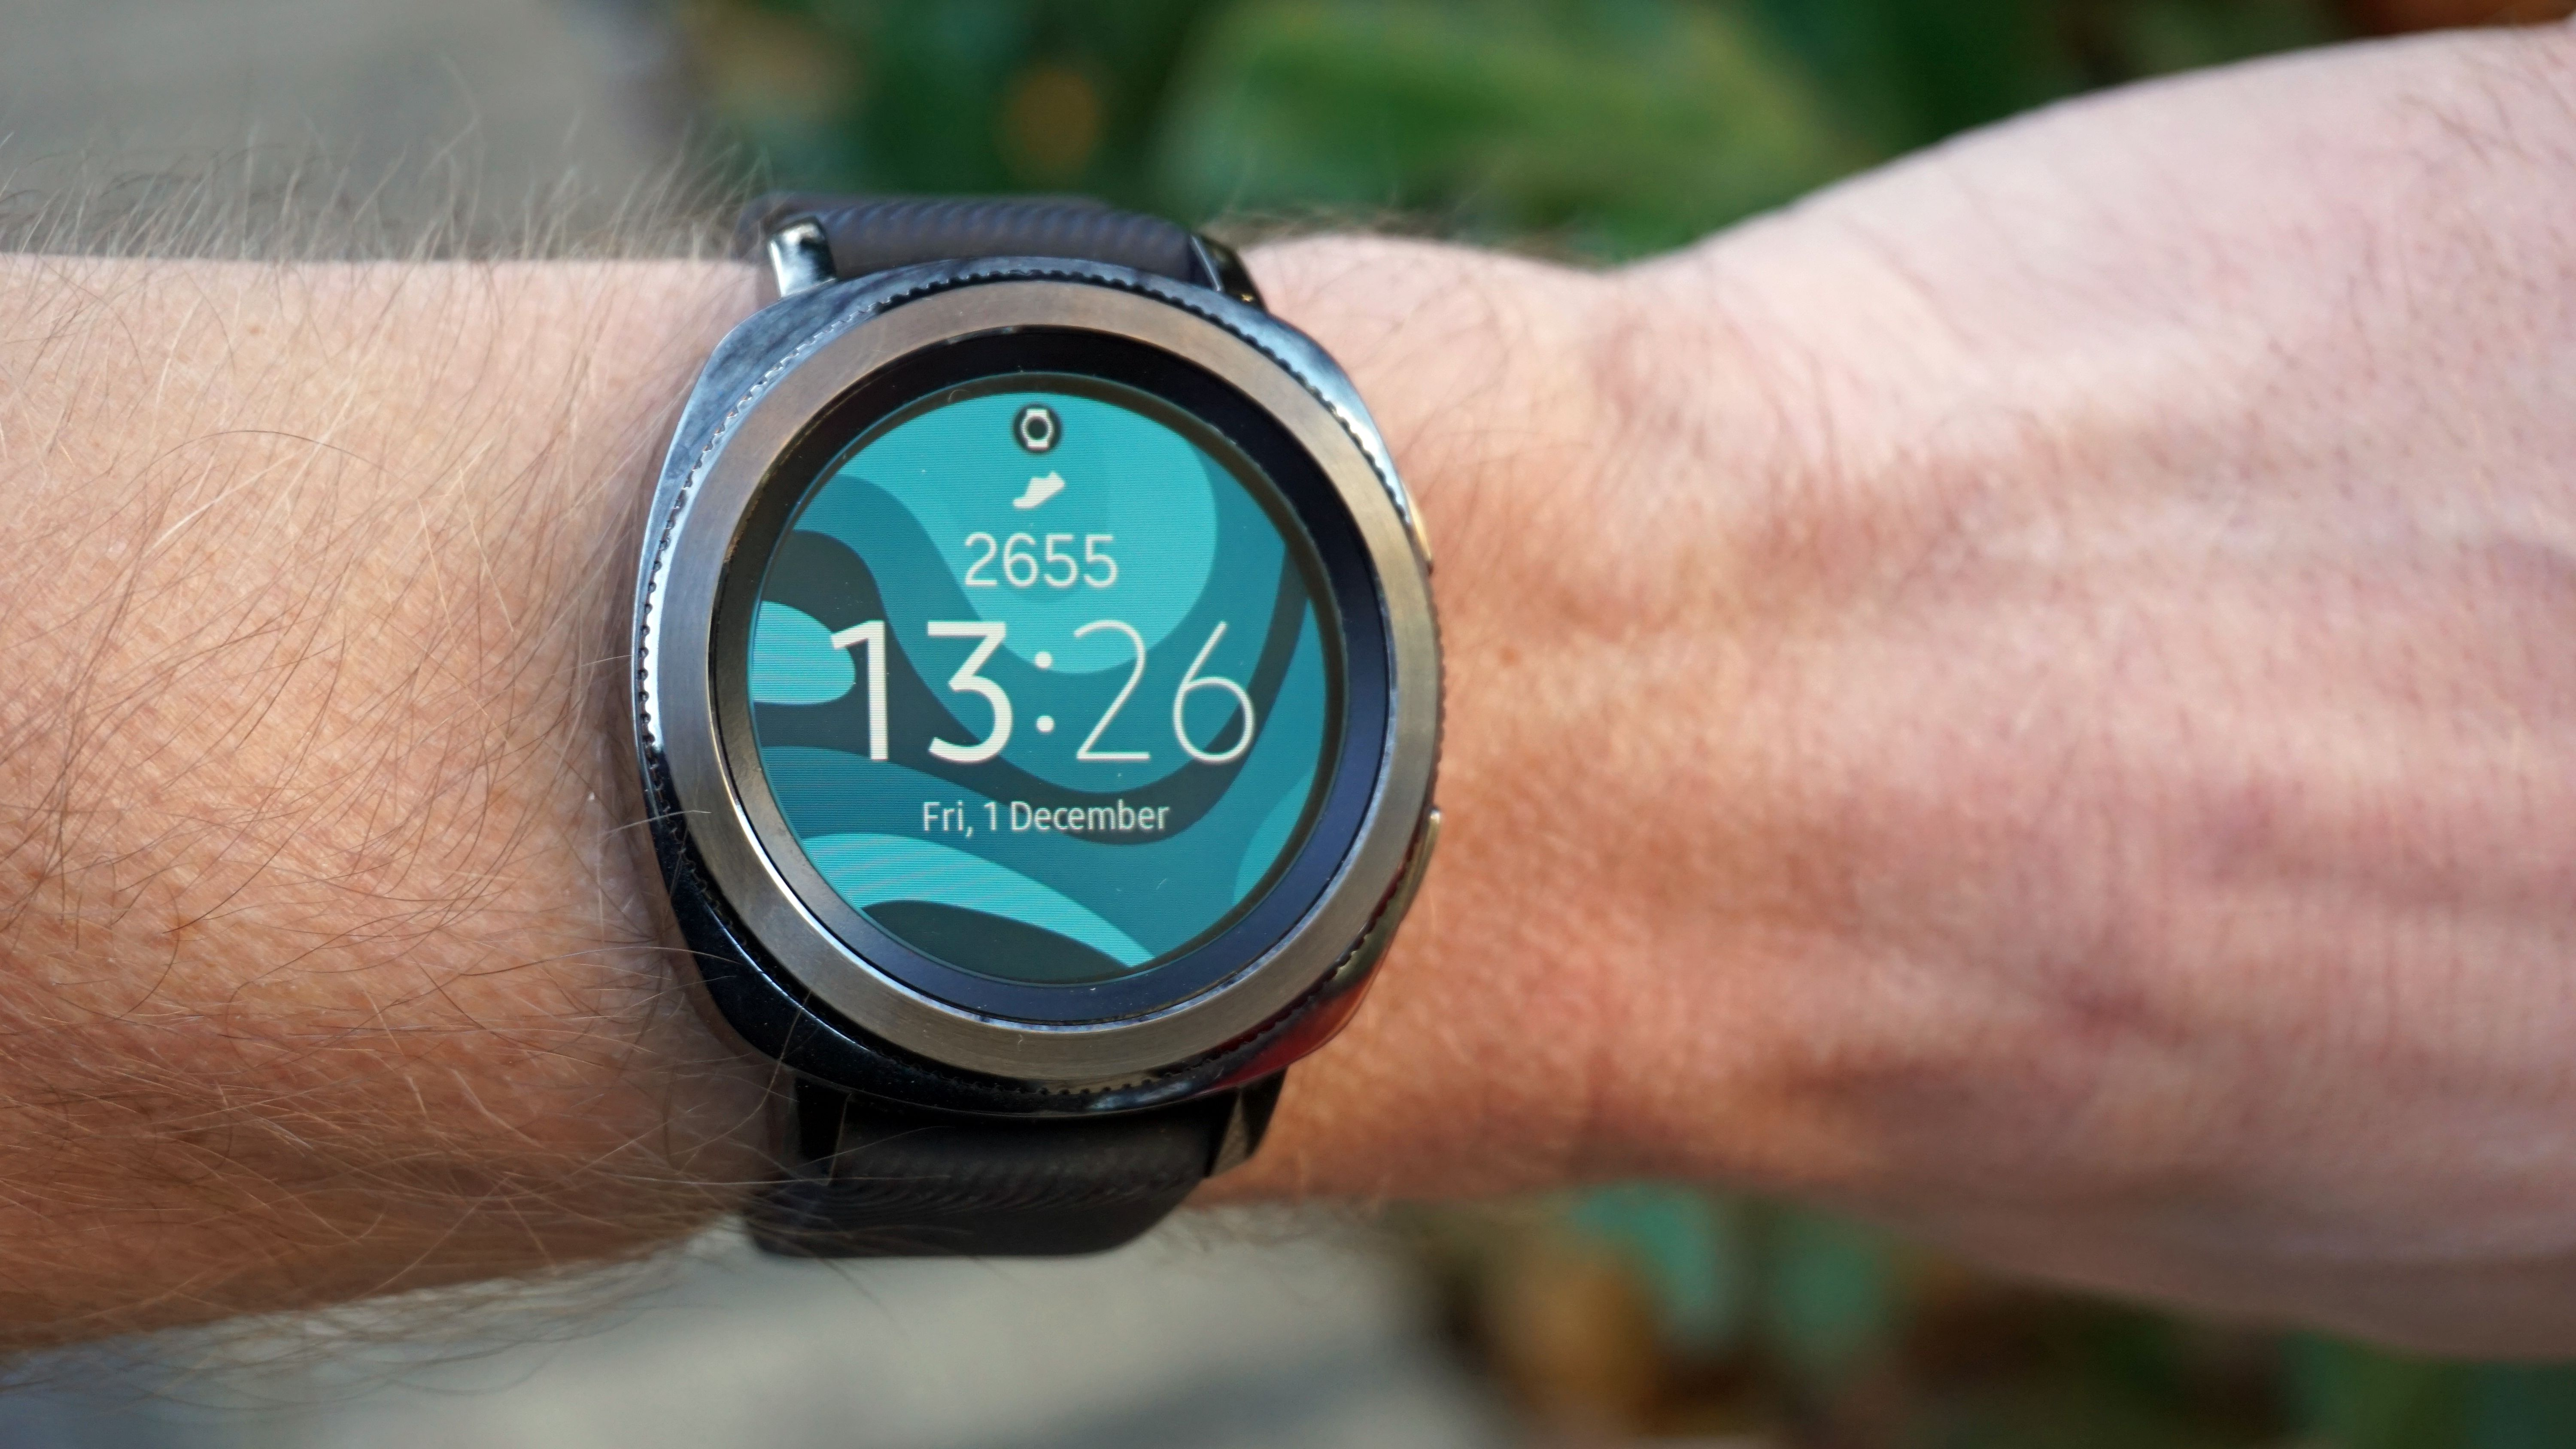 The Samsung Galaxy Watch Name Switch Just Made Me Excited For The Gear S4 Google Pixel Phone Samsung Samsung Galaxy